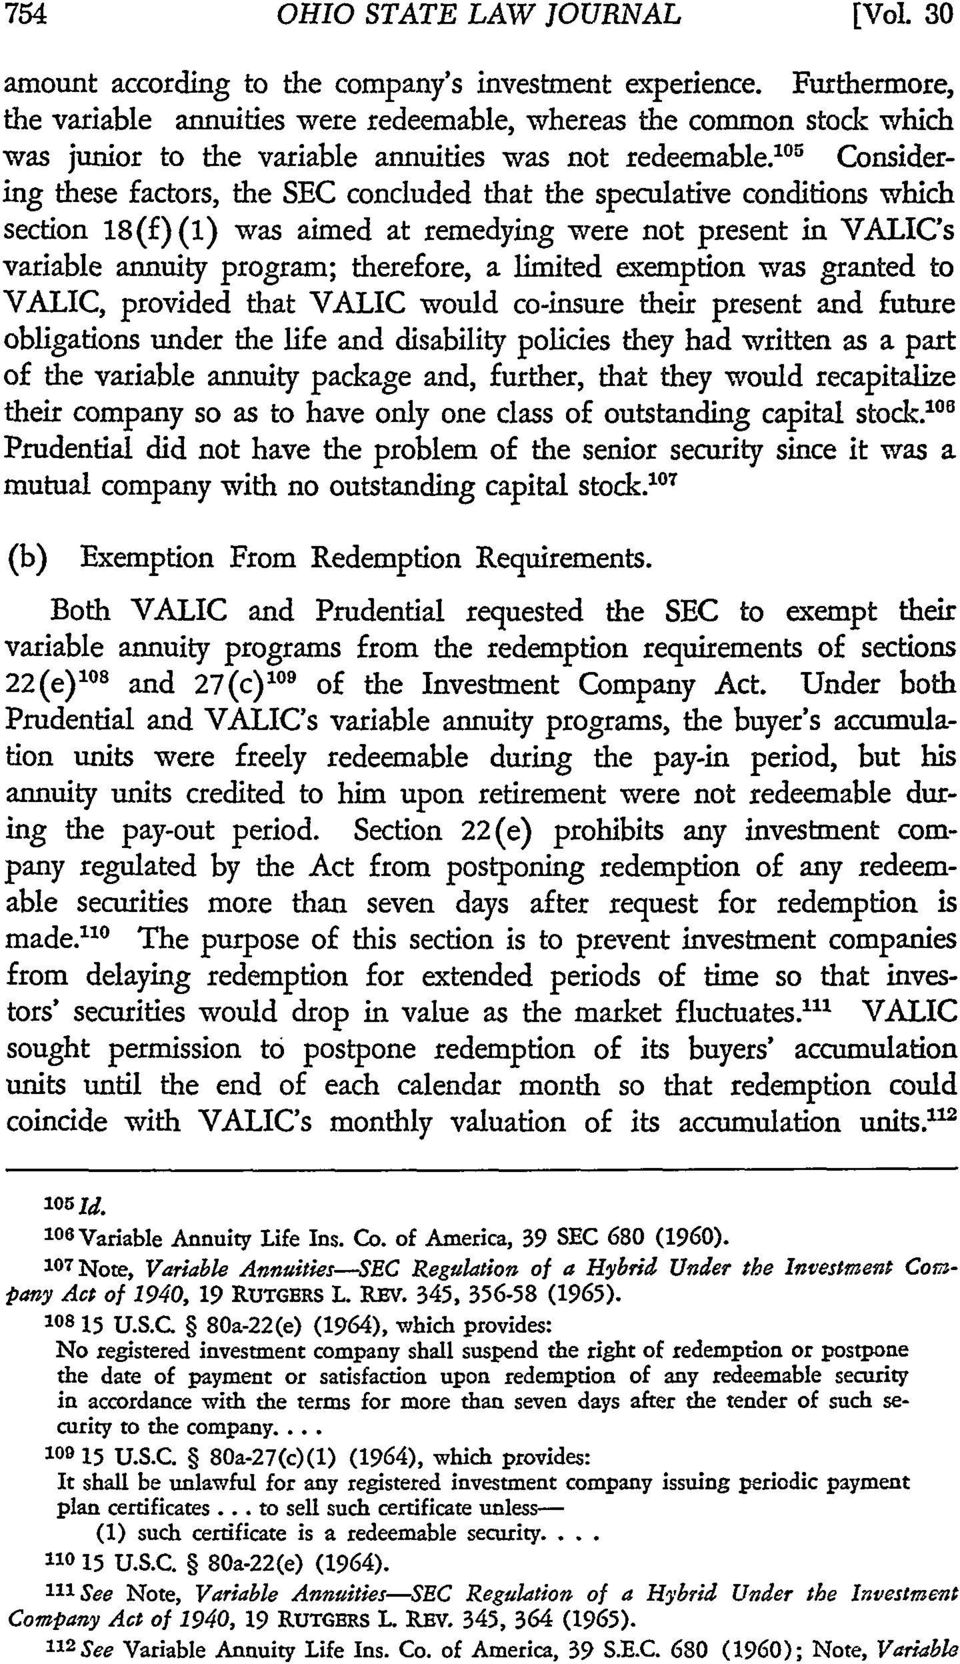 10 5 Considering these factors, the SEC concluded that the speculative conditions which section 18(f)(1) was aimed at remedying were not present in VALIC's variable annuity program; therefore, a